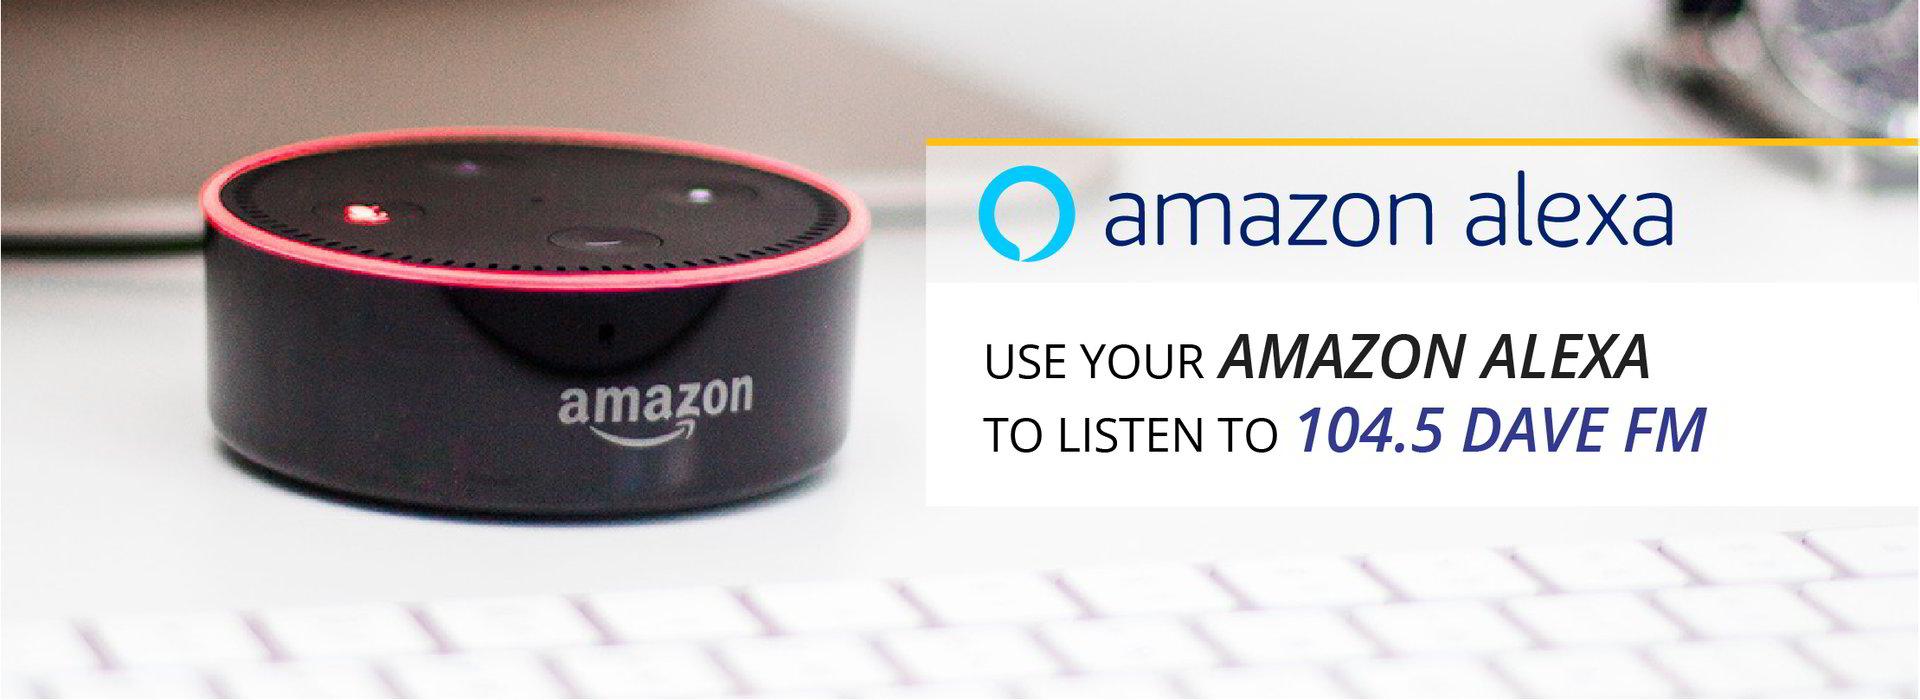 Amazon Alexa Can Play Our Station! Learn More